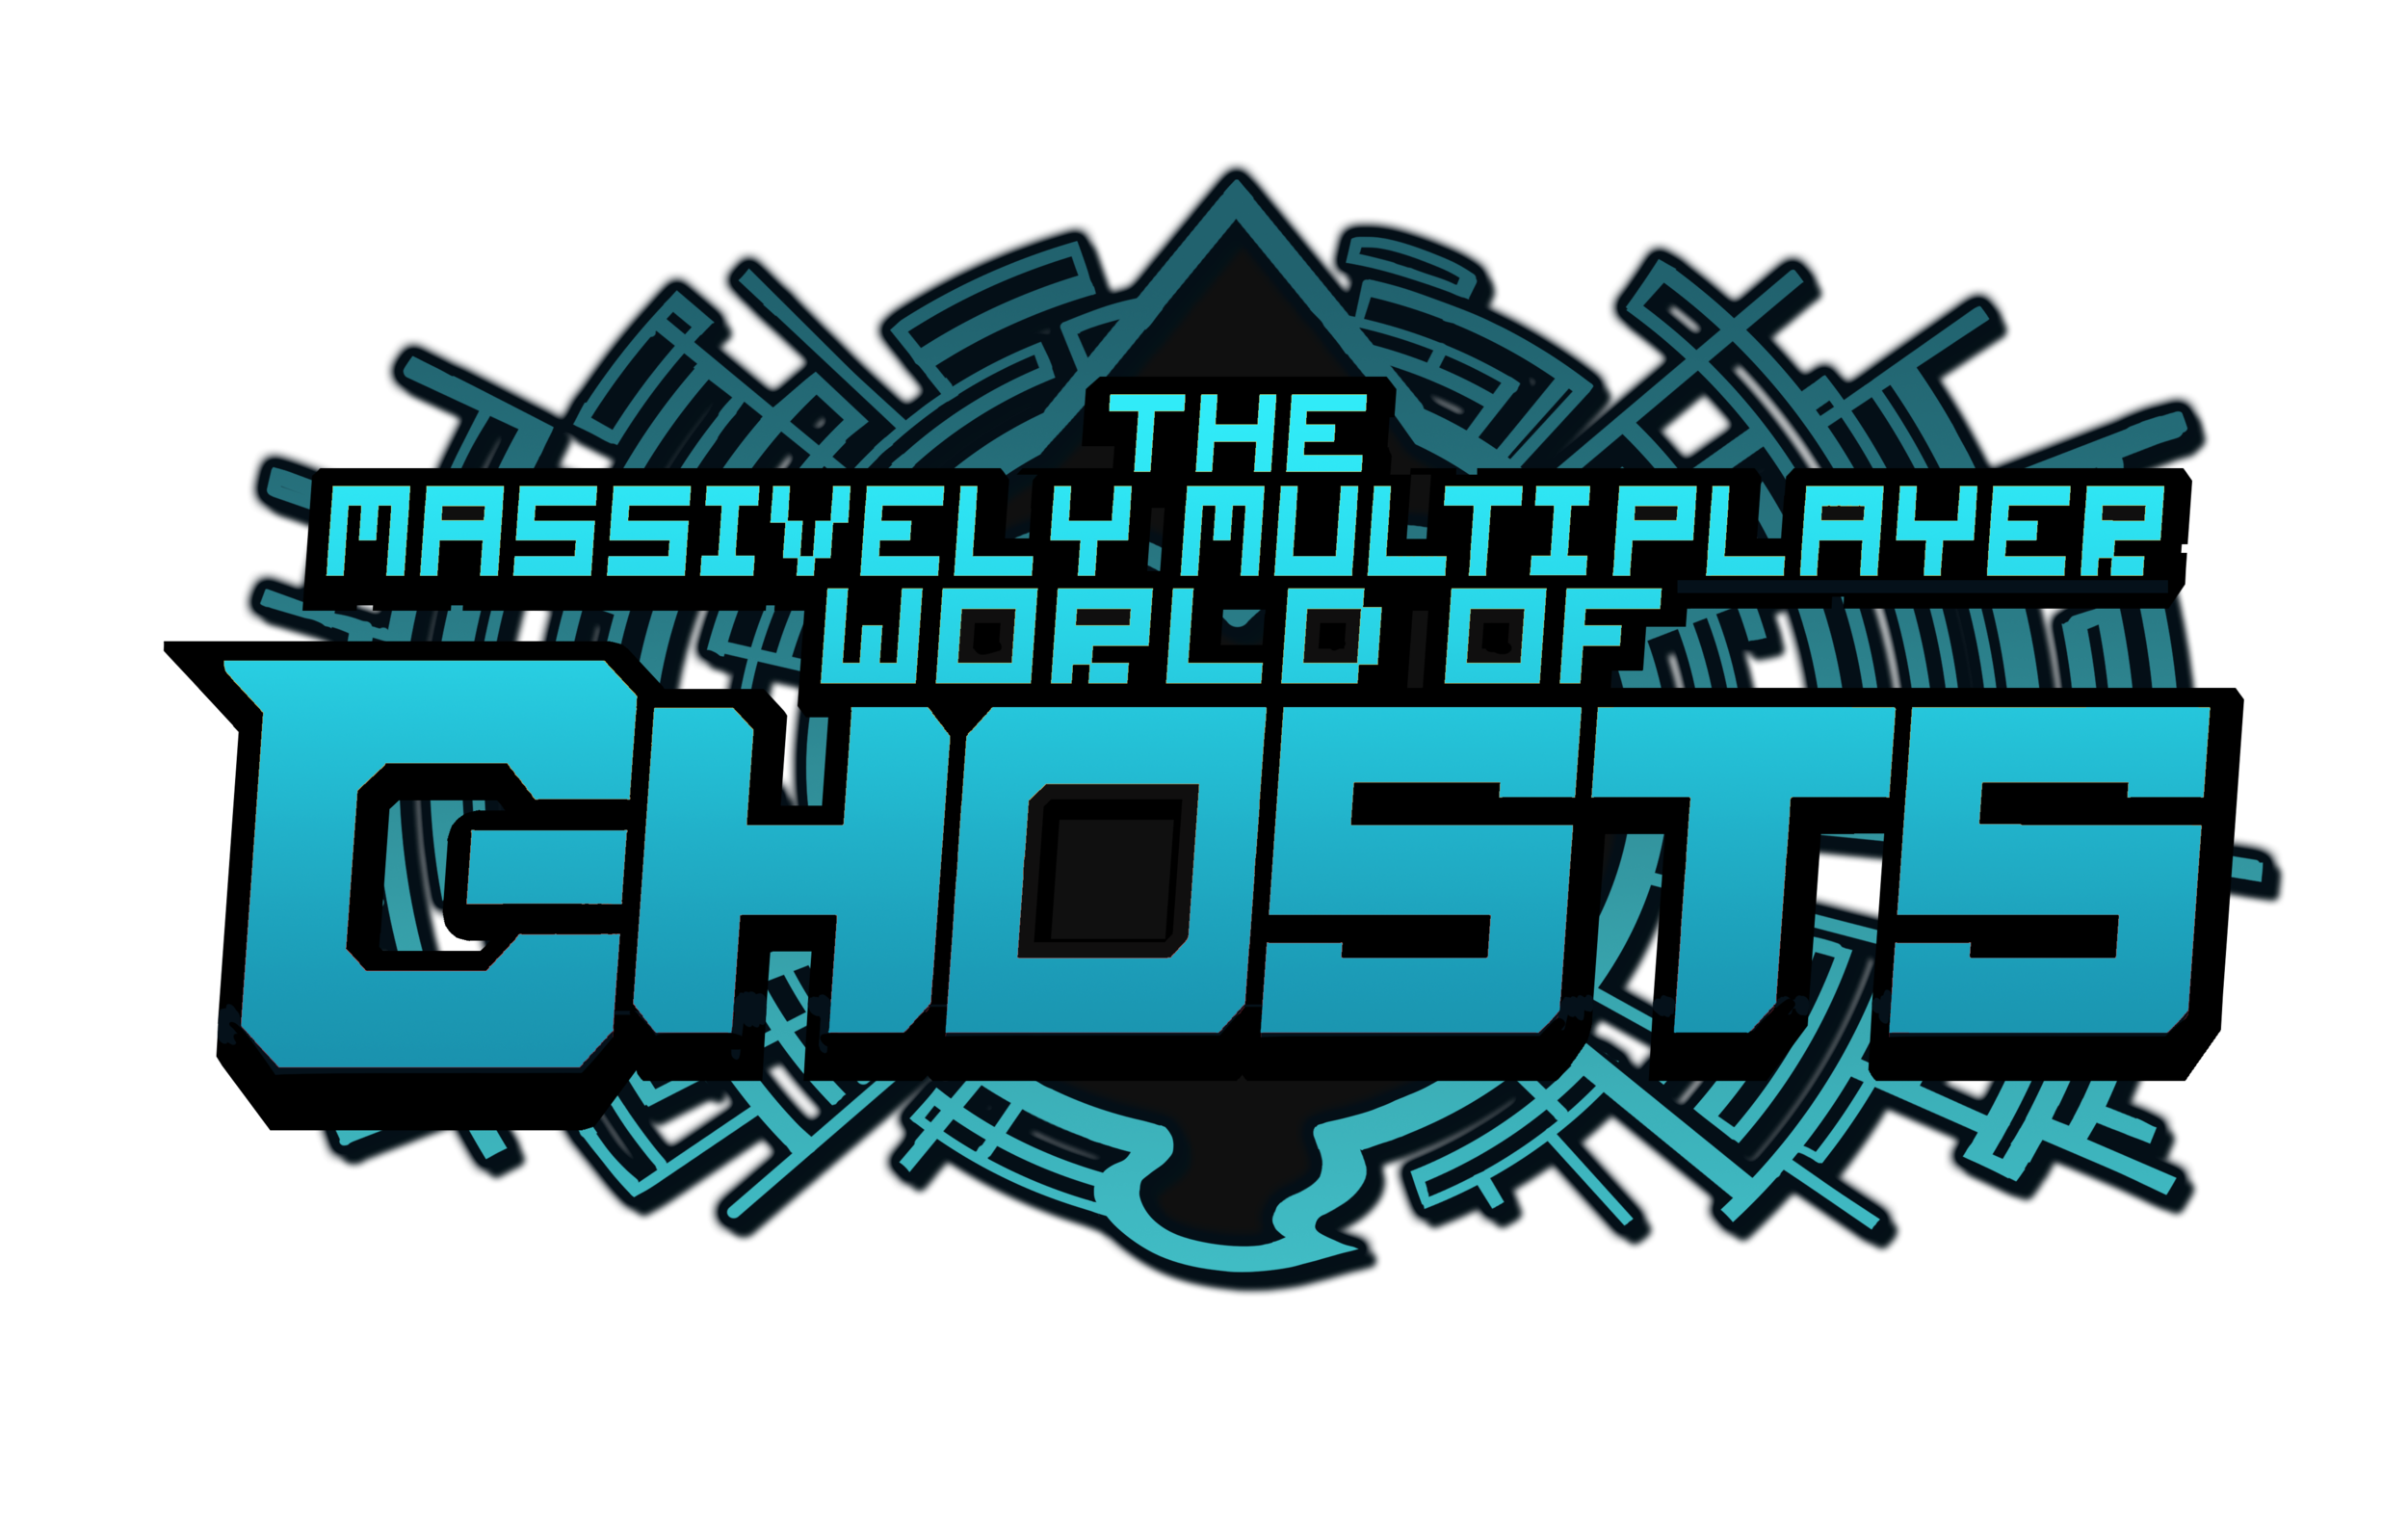 Massively Multiplayer World of Ghosts logo